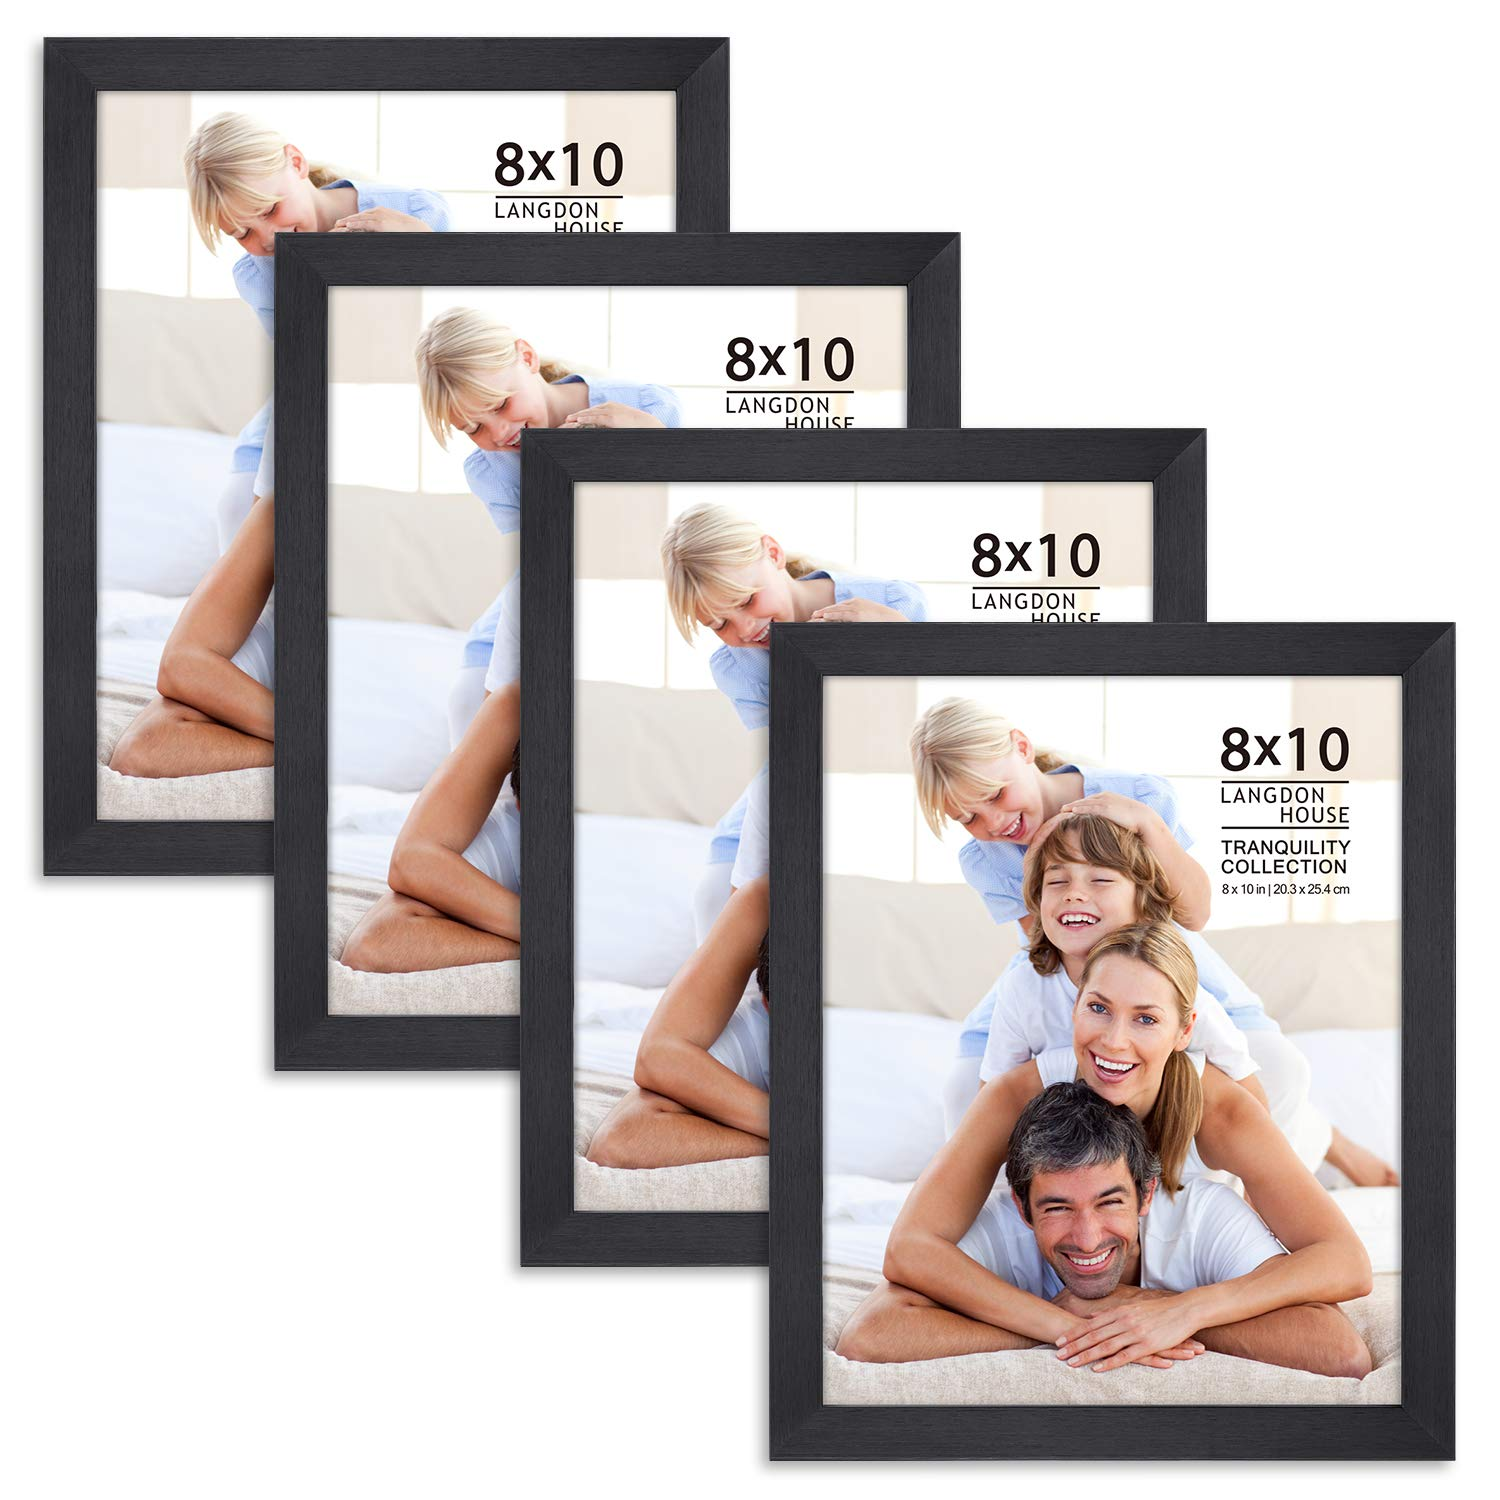 Langdons 8x10 Picture Frame Set (4 Pack, Black), Fabulous Black 8x10 Frames, Swivel Tabs, Tabletop Easel and Wall Hang Hardware Included, Tranquility Collection